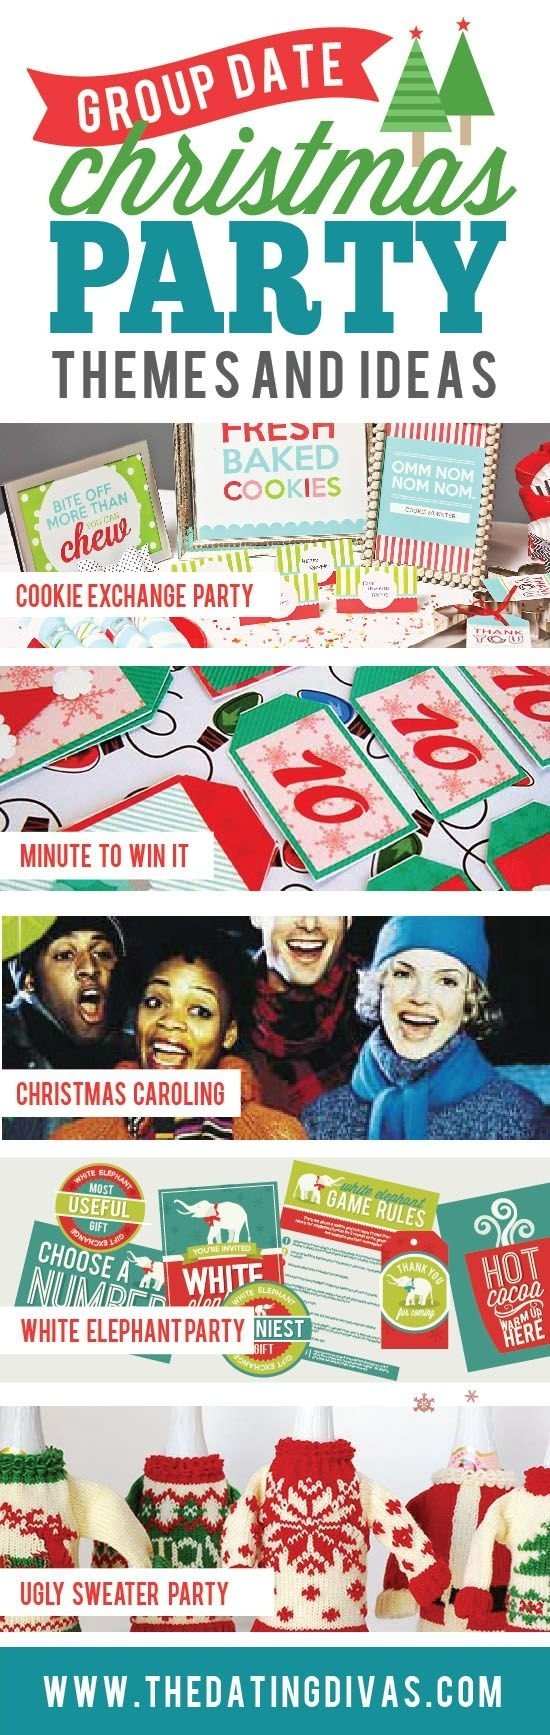 10 Best Youth Group Christmas Party Ideas 429 best church youth ideas and games images on pinterest 2020